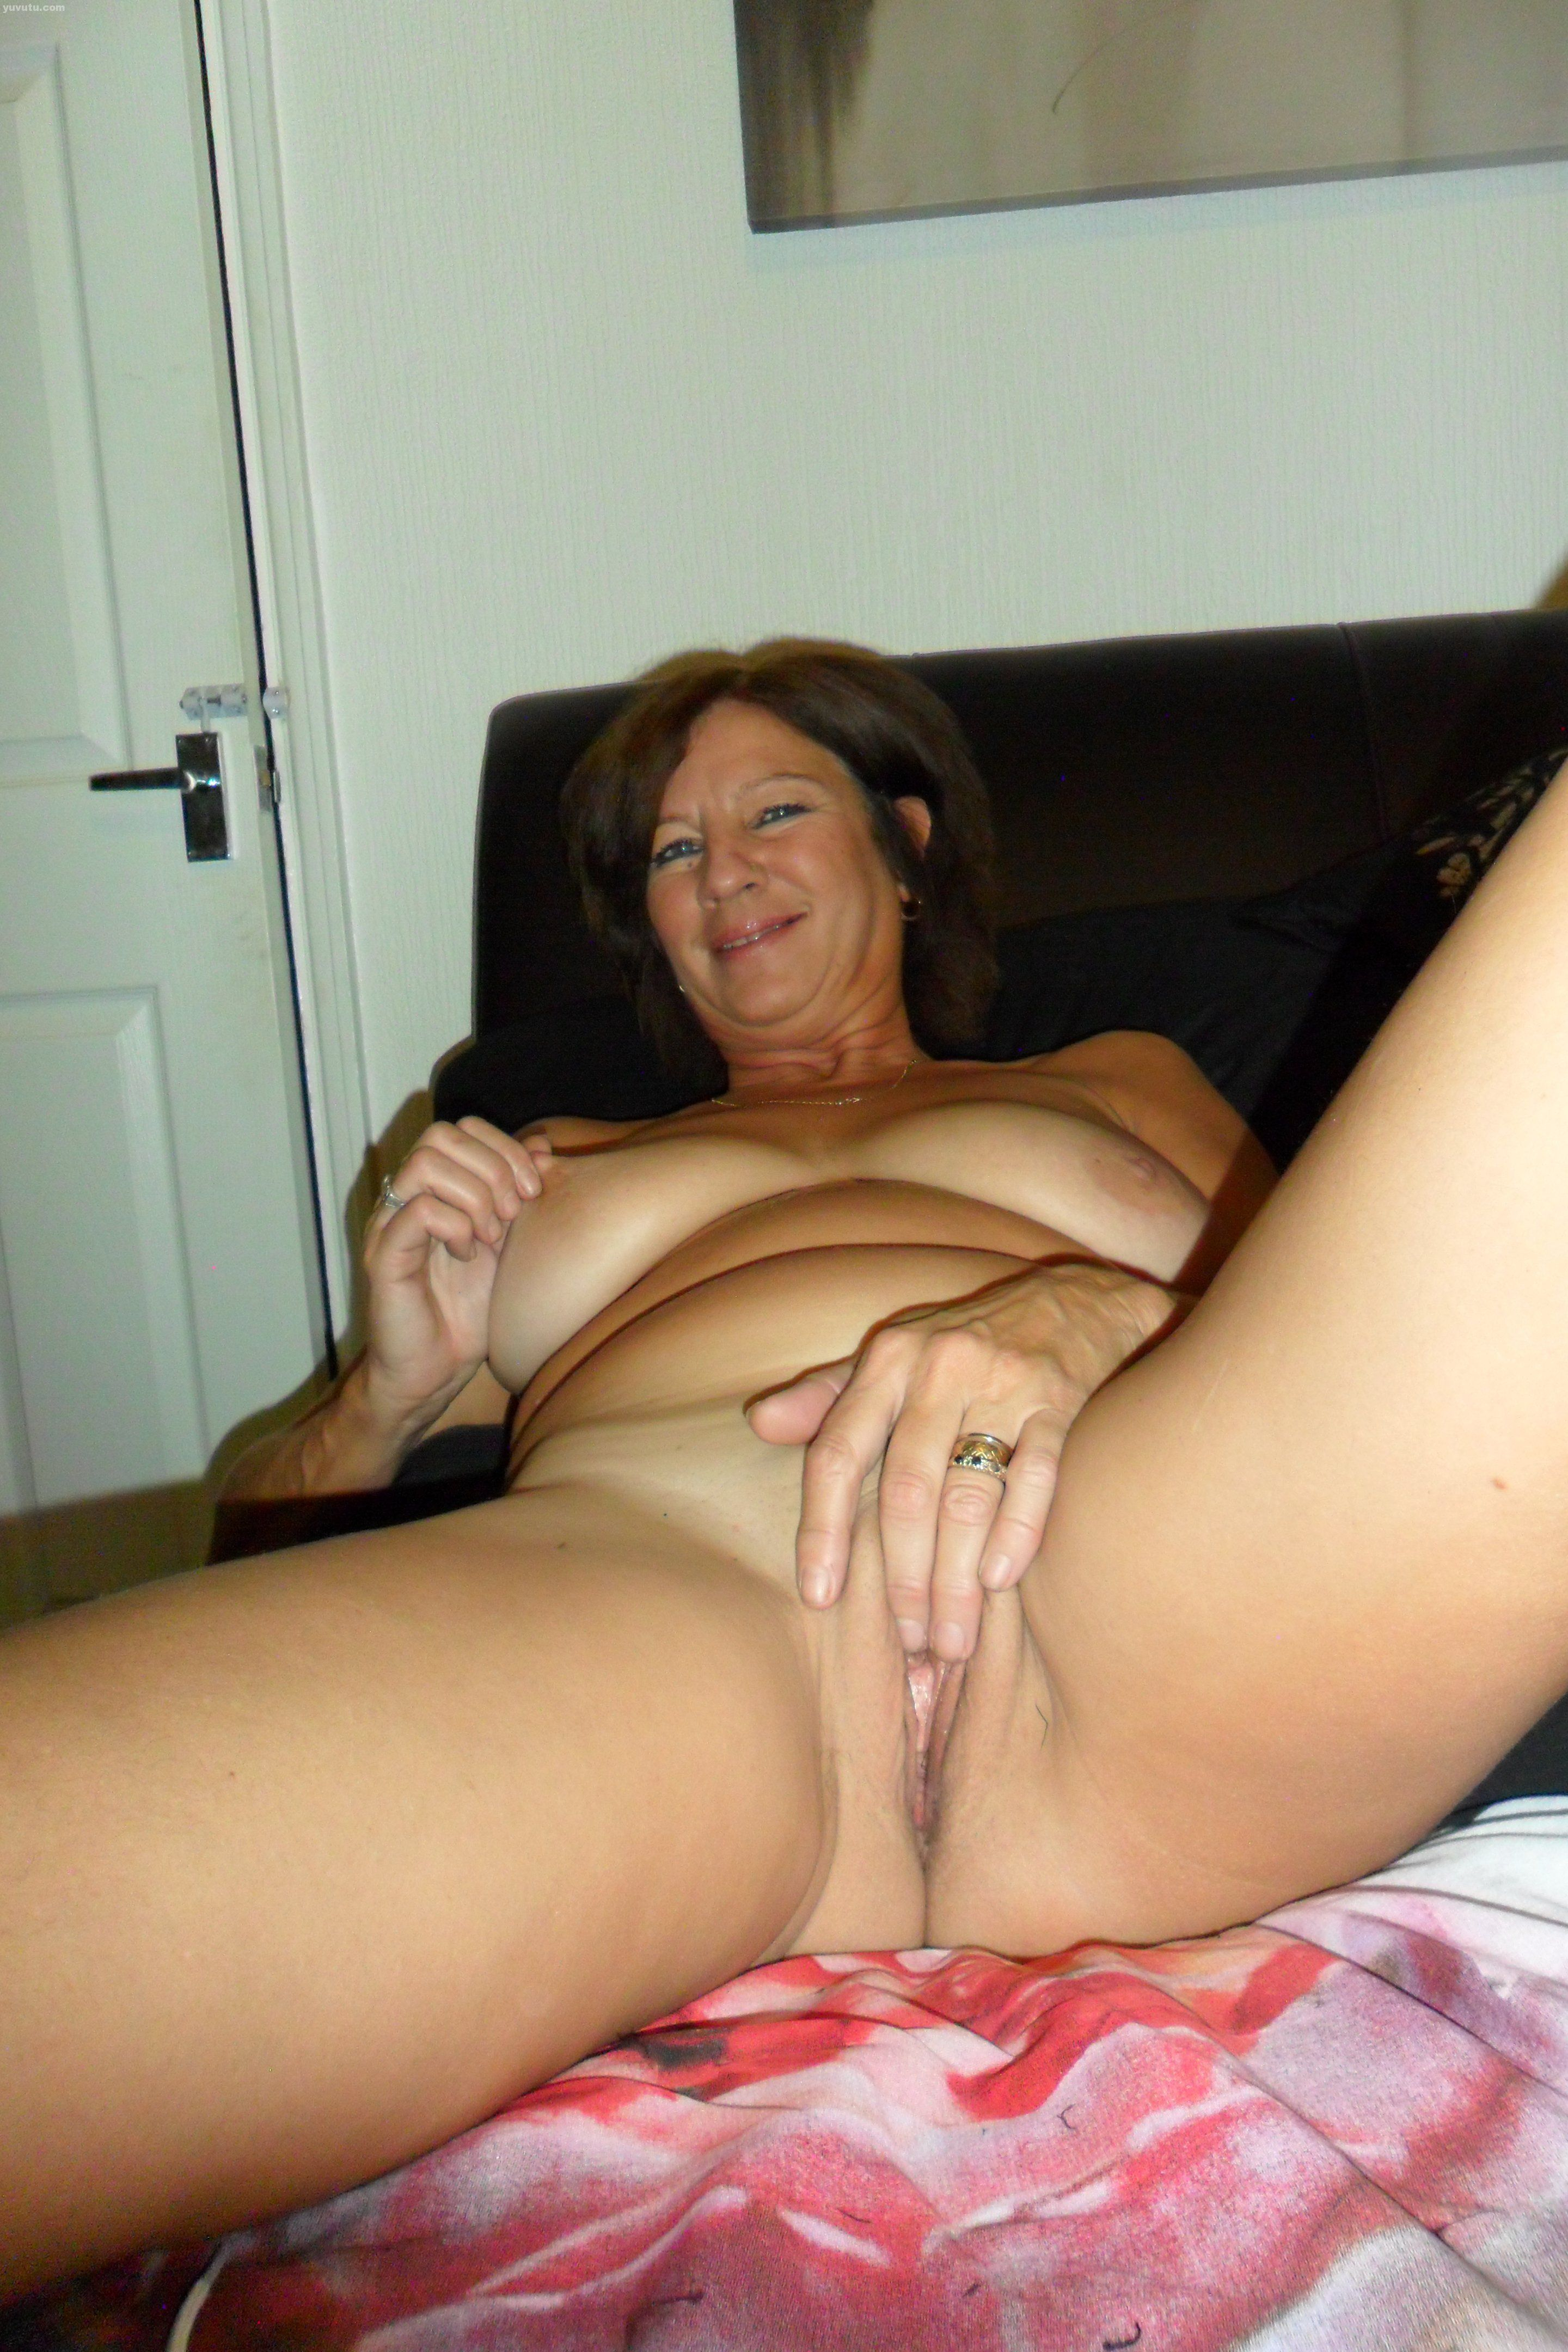 Amuture Porn Com free amuture milf pictures - sex top gallery free.